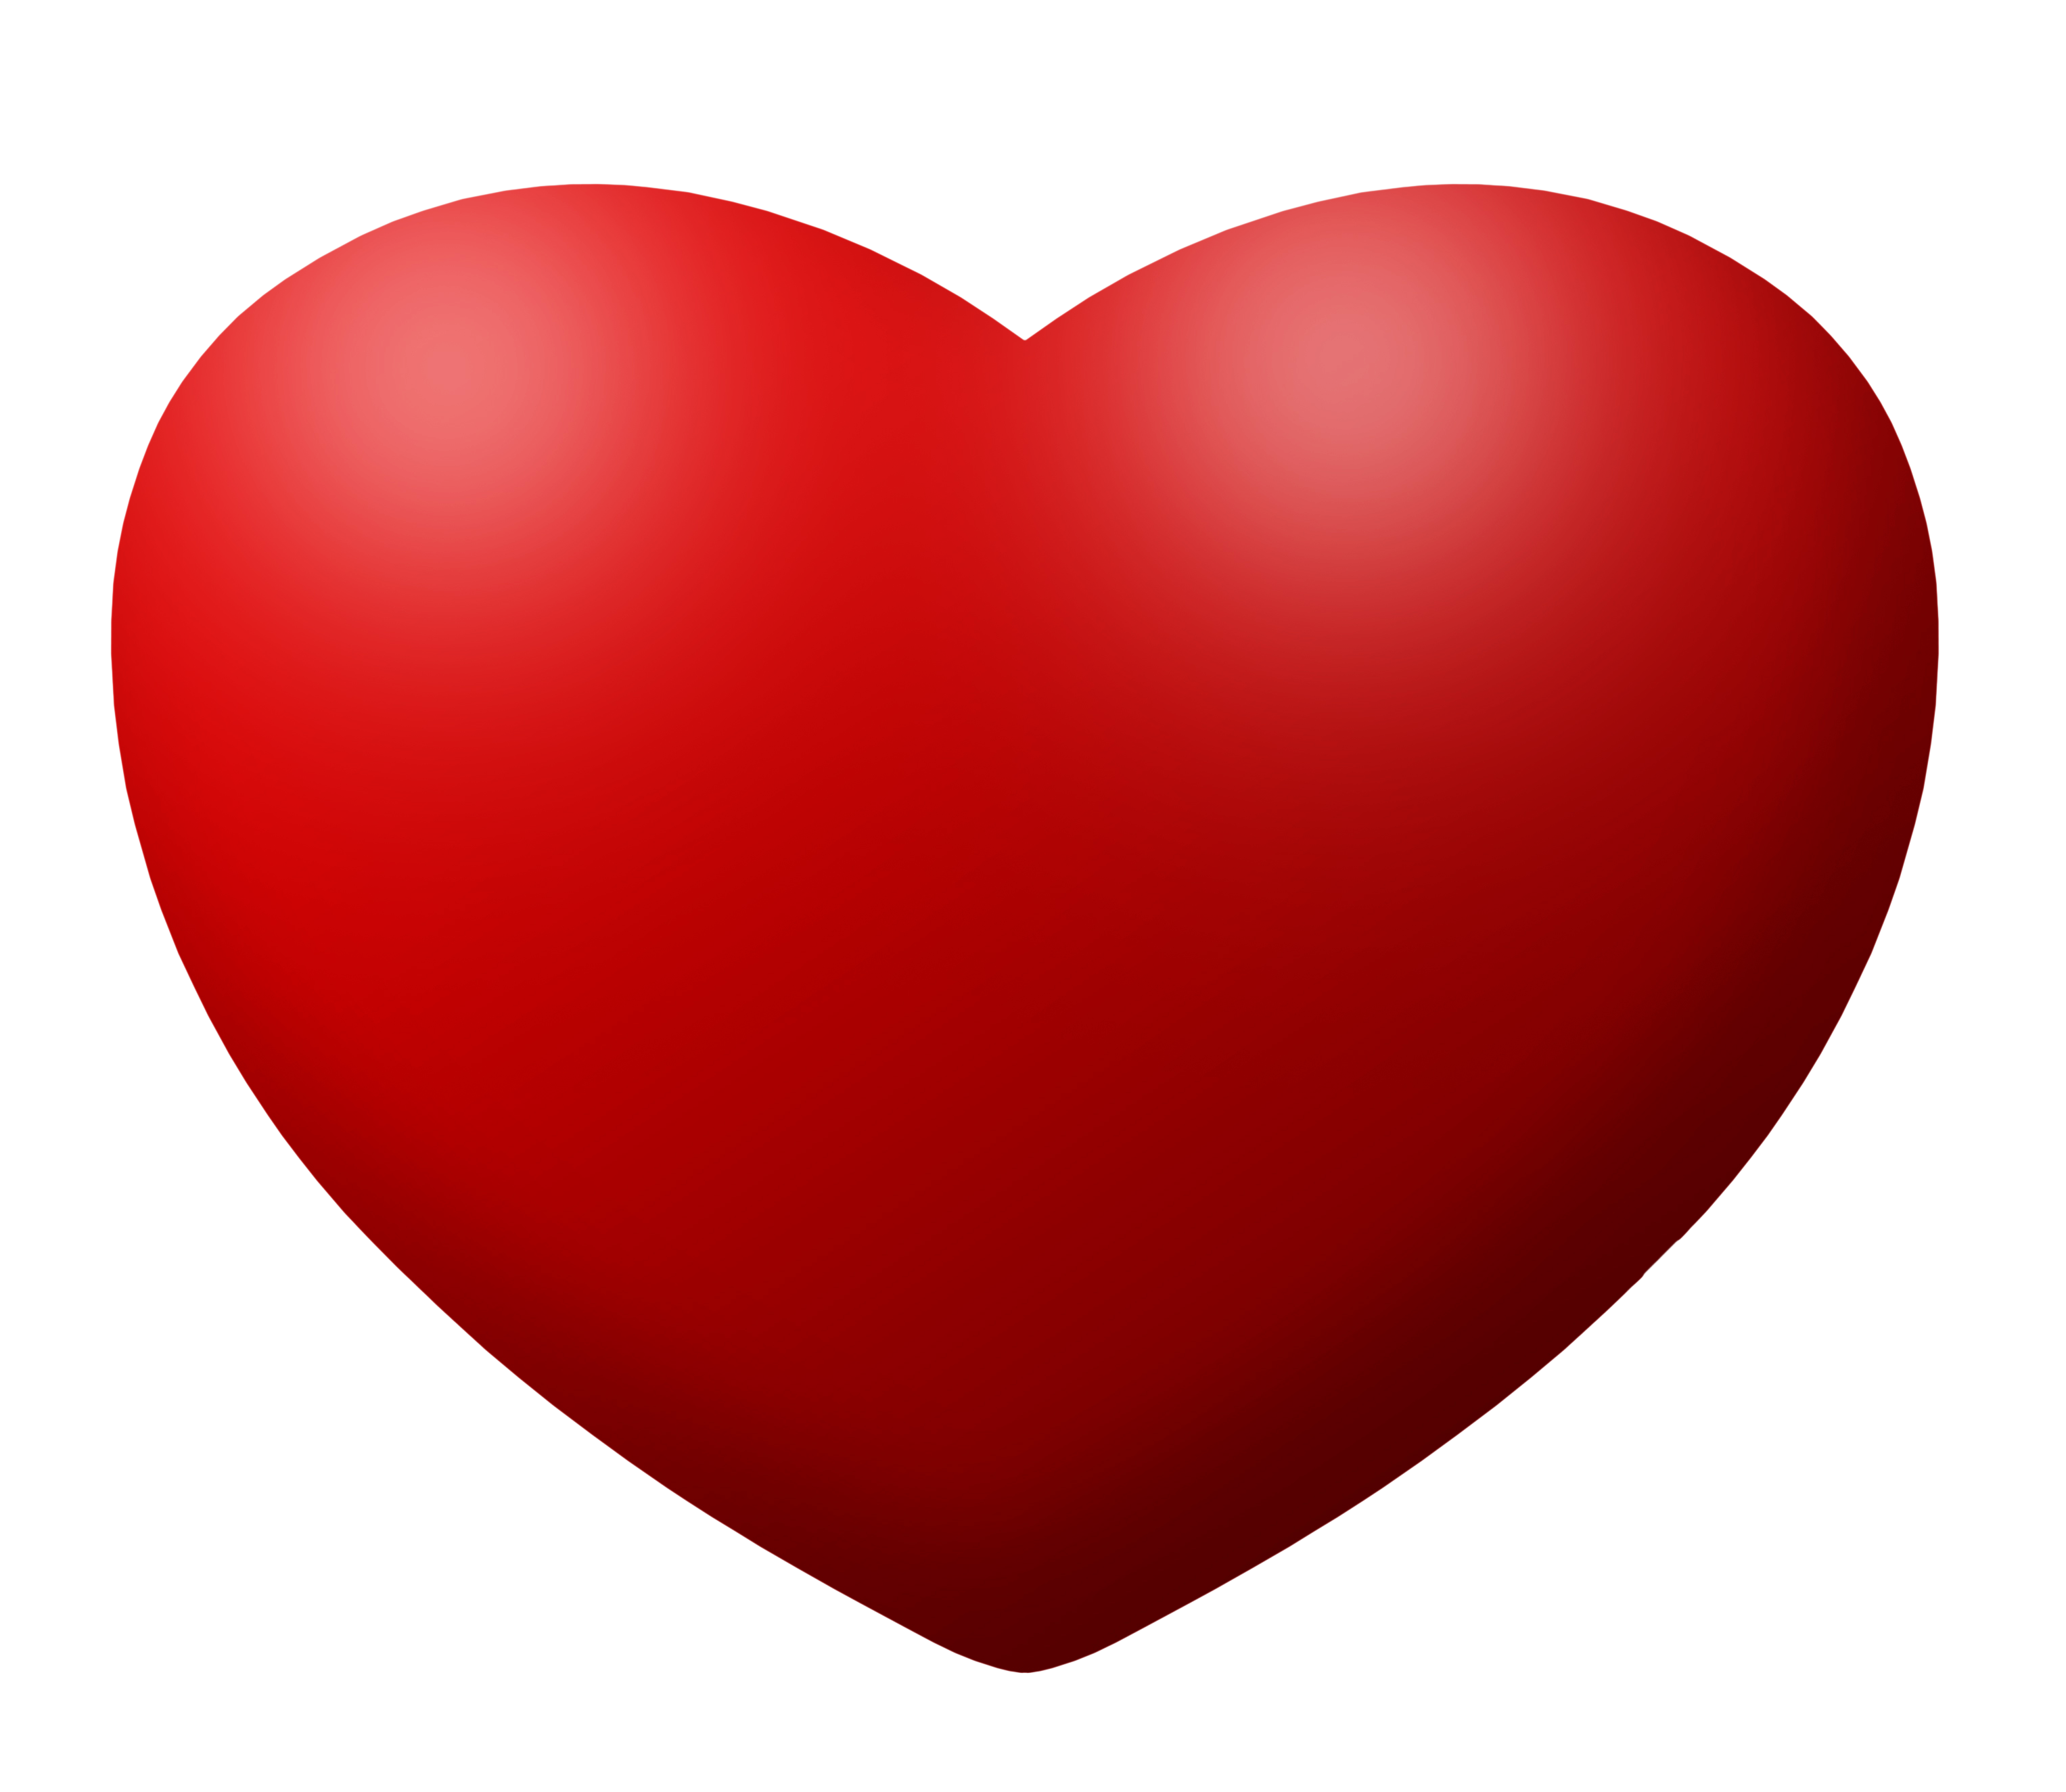 Heart PNG image, free download - Heart PNG -  Heart PNG HD